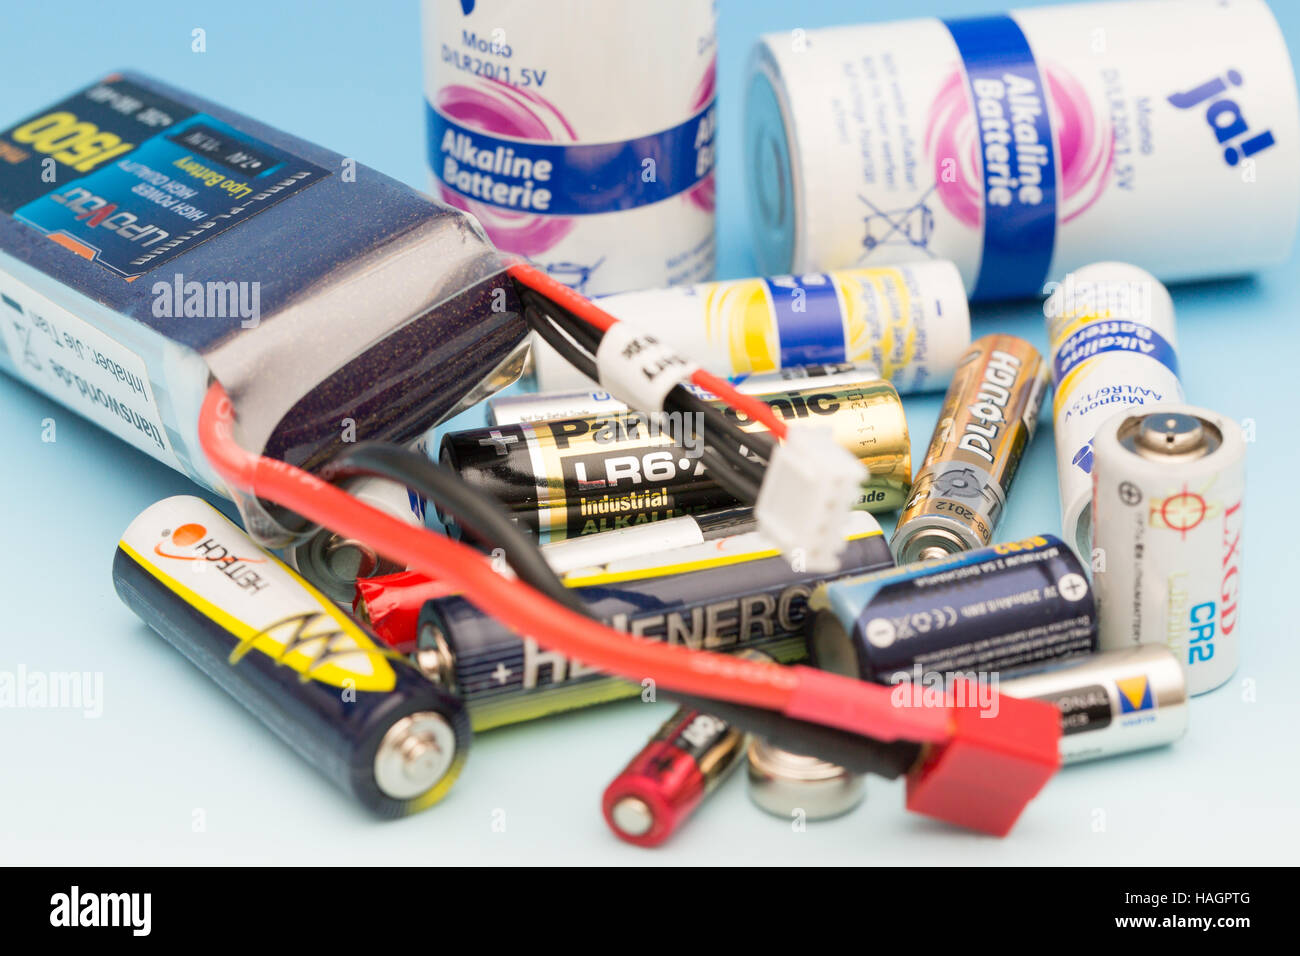 Frankfurt am Main, Germany- September, 24, 2013:  Used batteries and rechargeable batteries for recycling - Stock Image